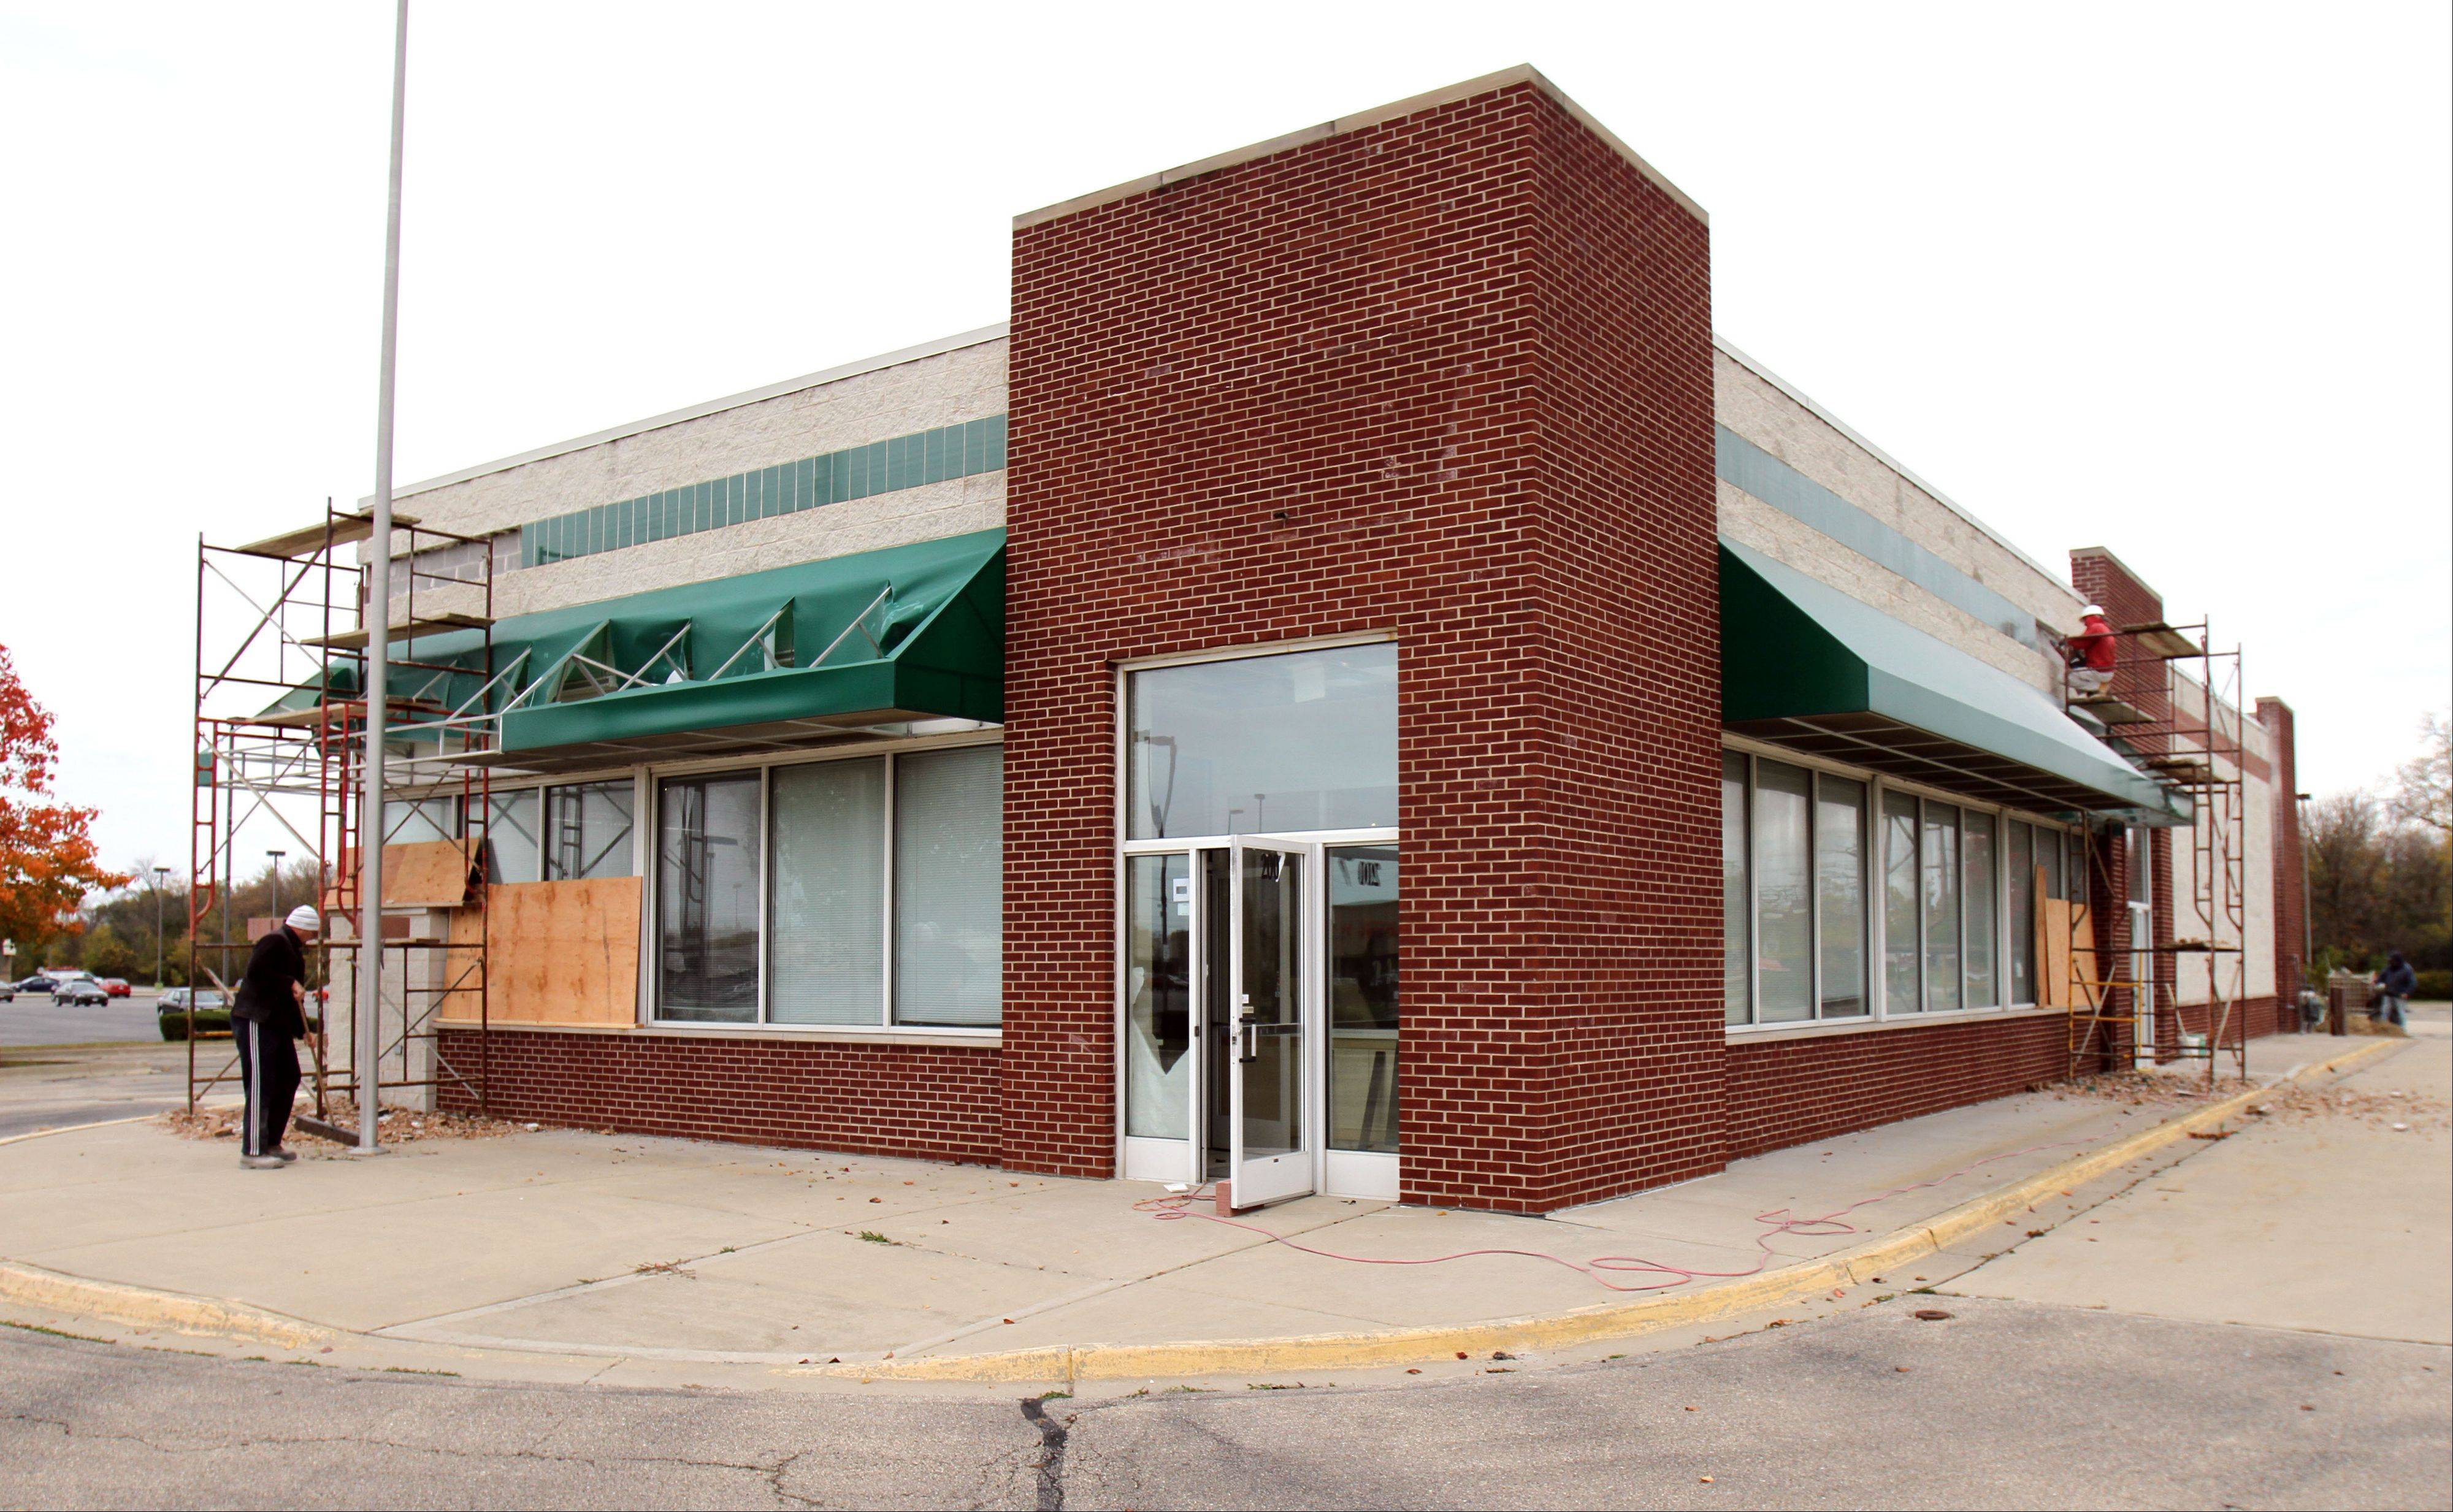 A Pita Inn restaurant will replace the former Krispy Kreme on Mundelein's south side.